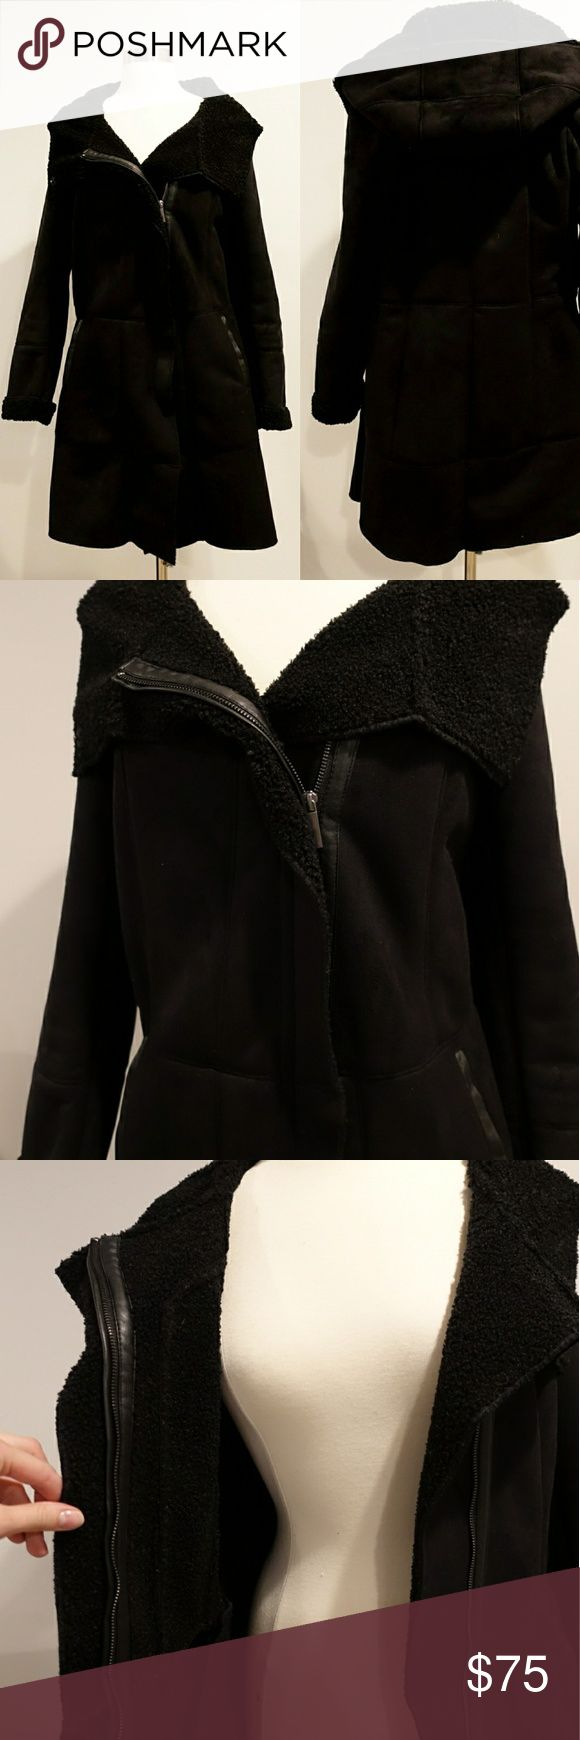 French Connection Suede Shearling Coat Heavy and warm beautiful faux shearling (feels like suede) coat. Zips up and has beautiful details, and hood. Worn once, it's just a little too big. Size small. French Connection Jackets & Coats